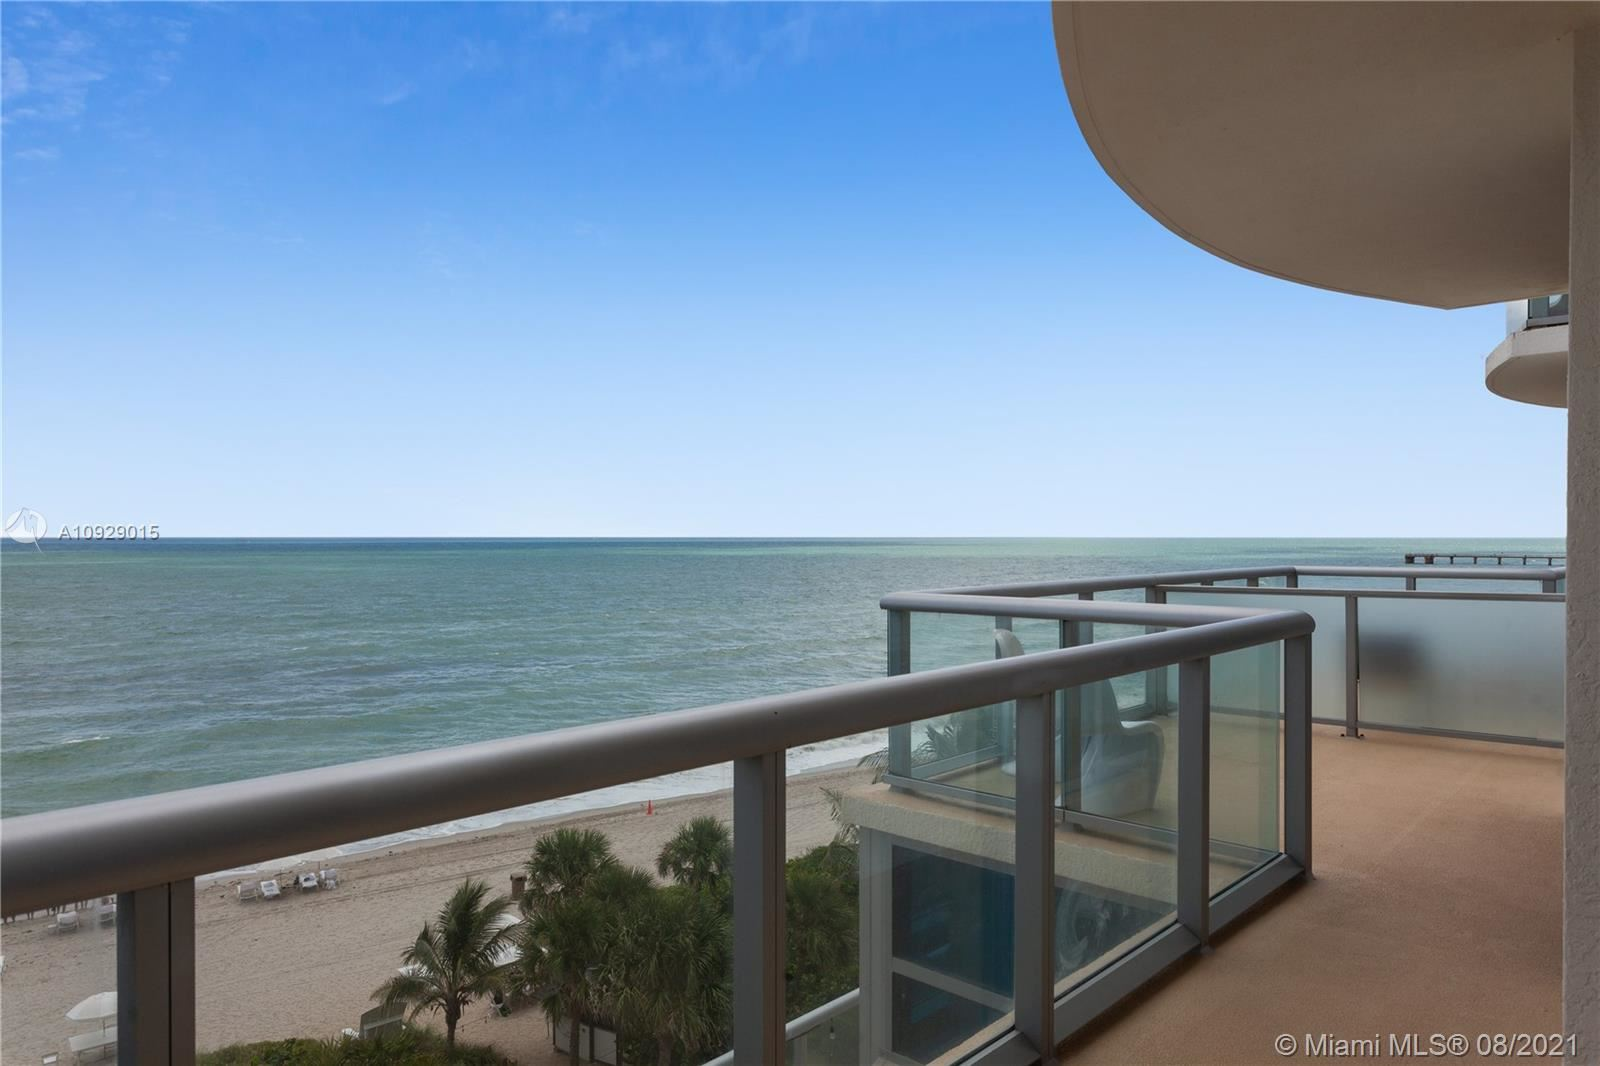 17315 Collins Ave #601, Sunny Isles, FL 33160 - #: A10929015